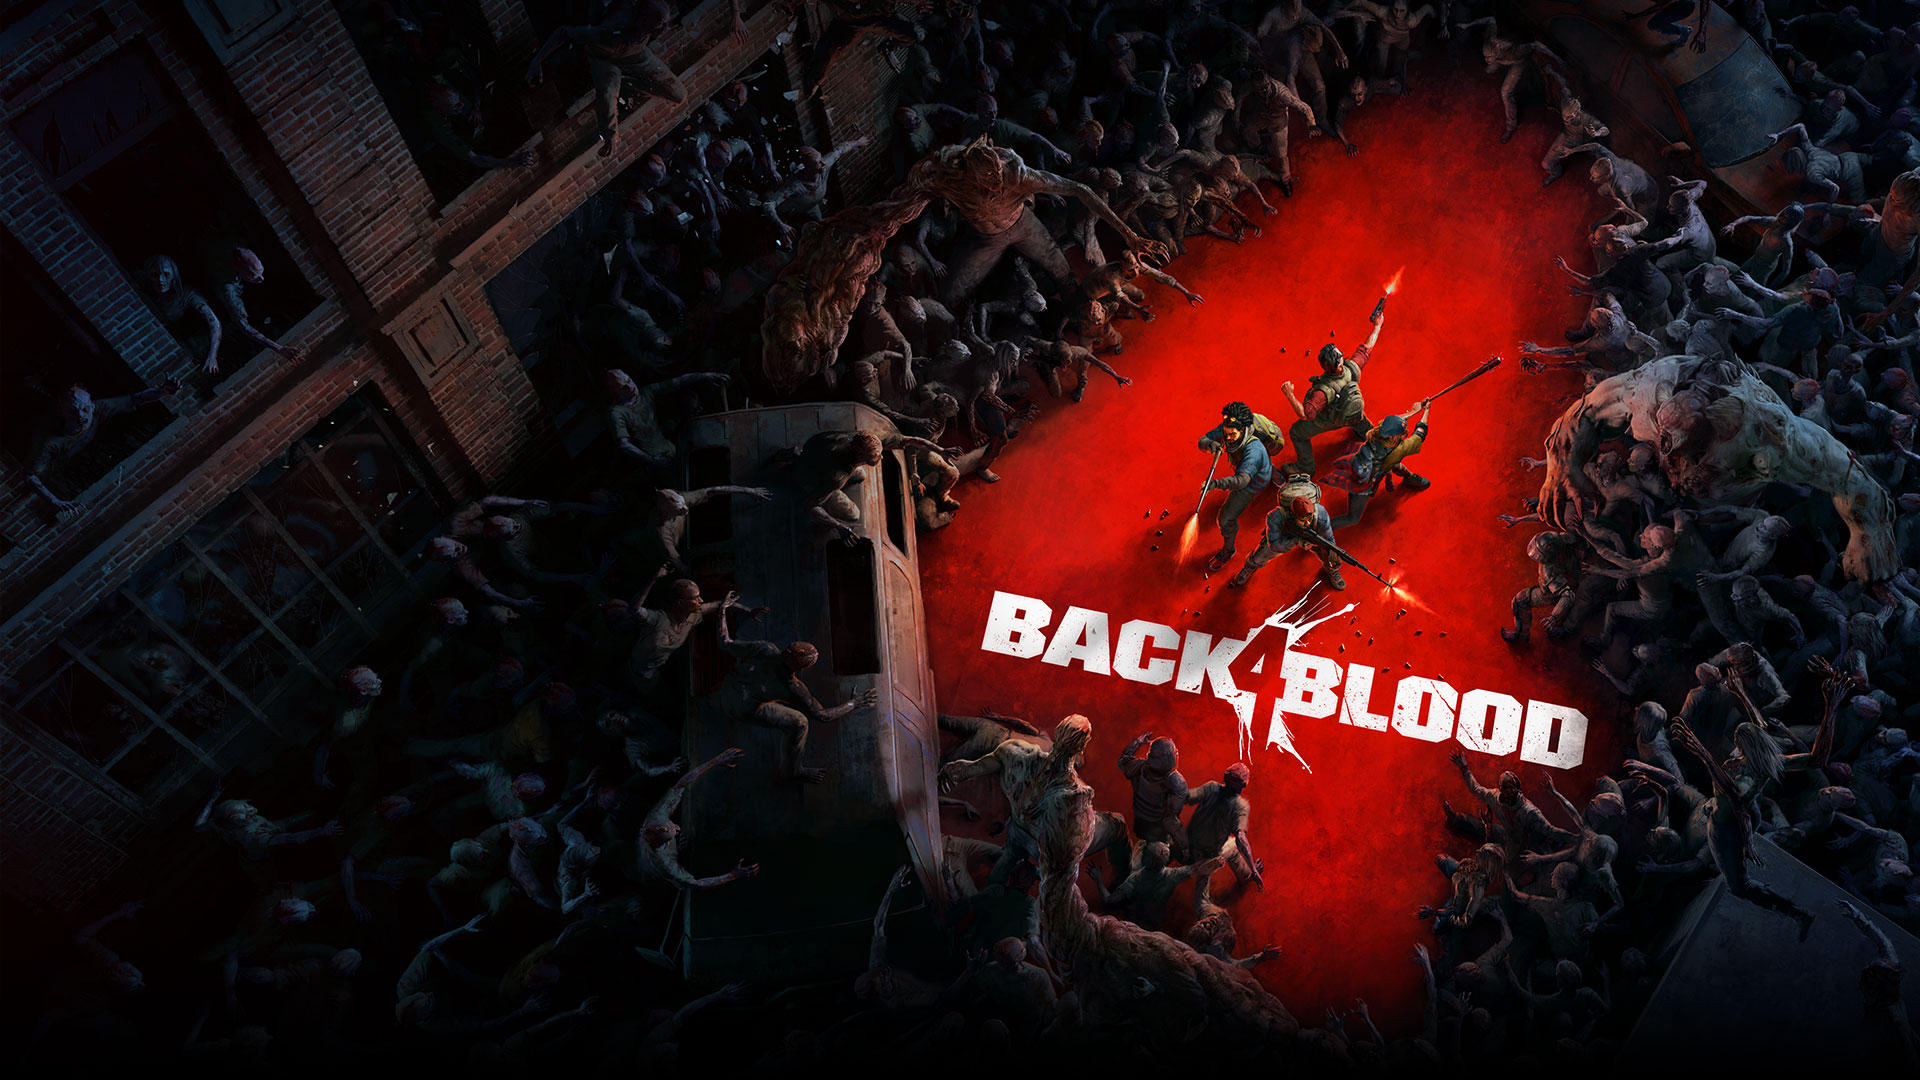 Back 4 Blood, A horde of zombies in the shape of a number 4 surrounds a group of characters.